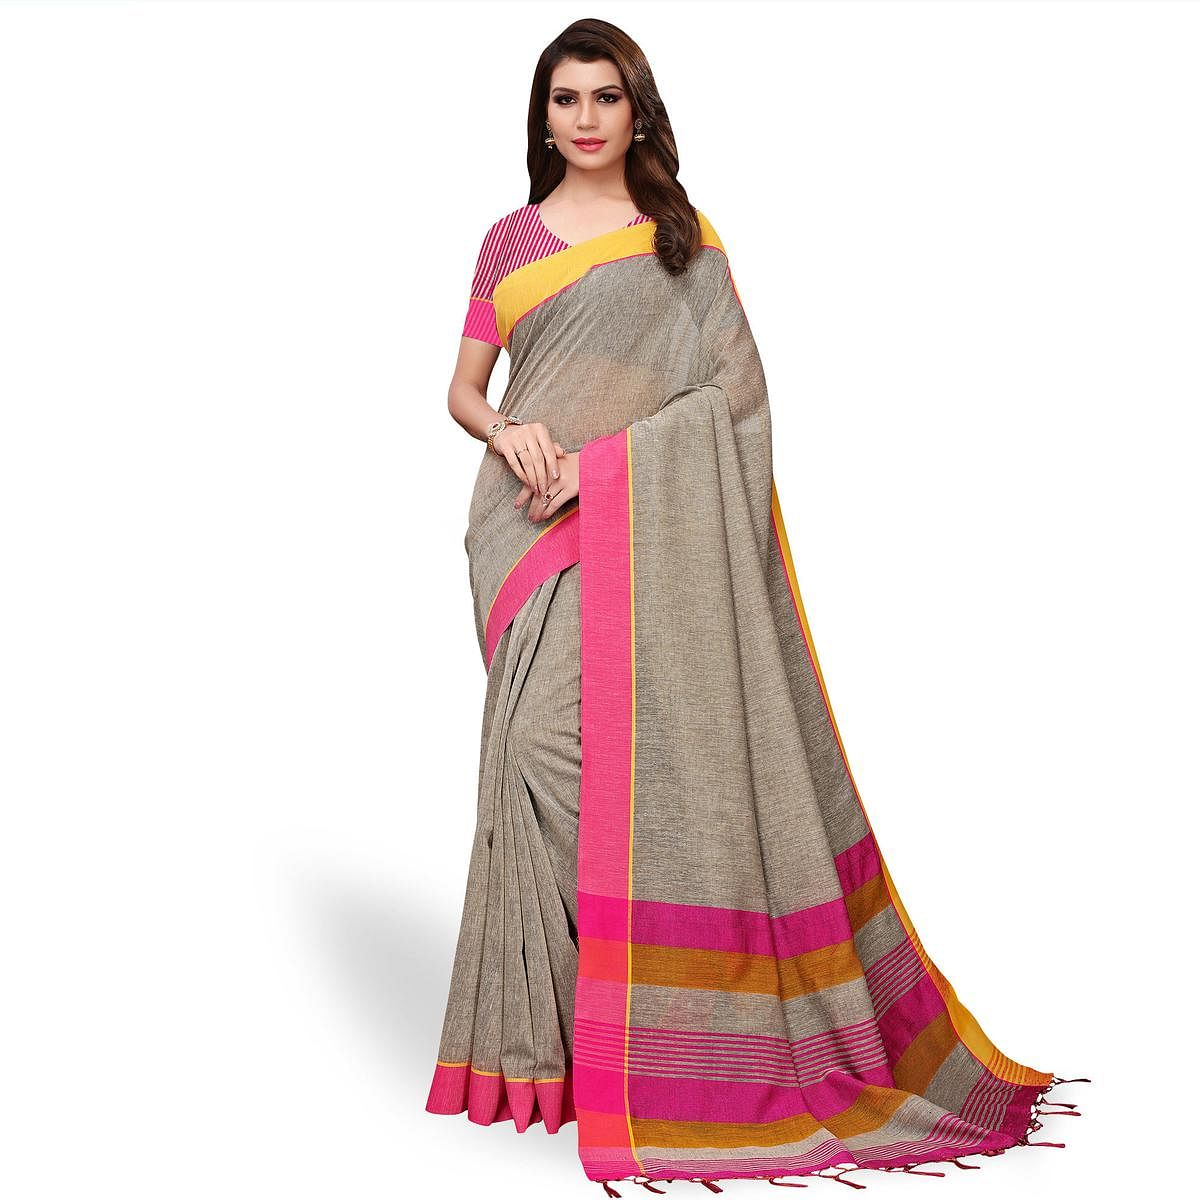 Radiant Gray Colored Festive Wear Linen Saree